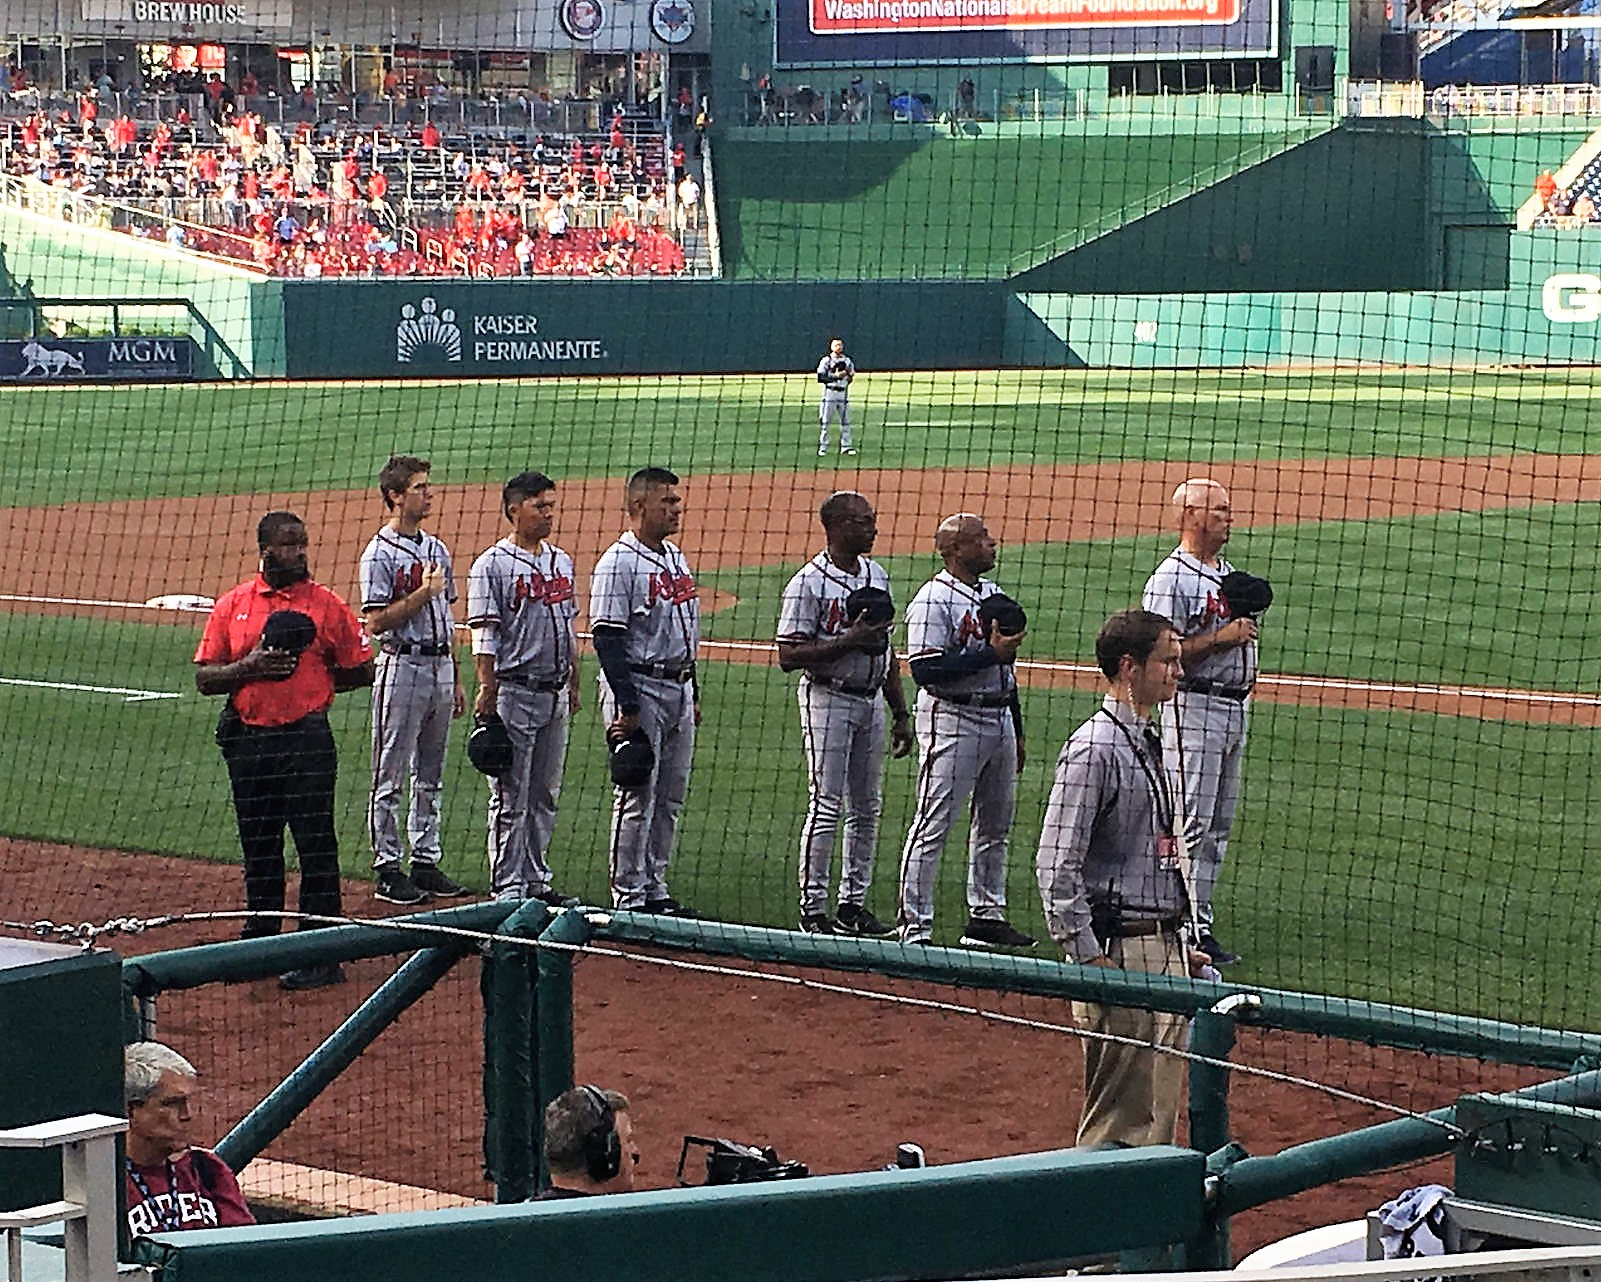 national anthem at baseball game, vip seating, homeplate seats, washington nationals stadium, baseball game with kids